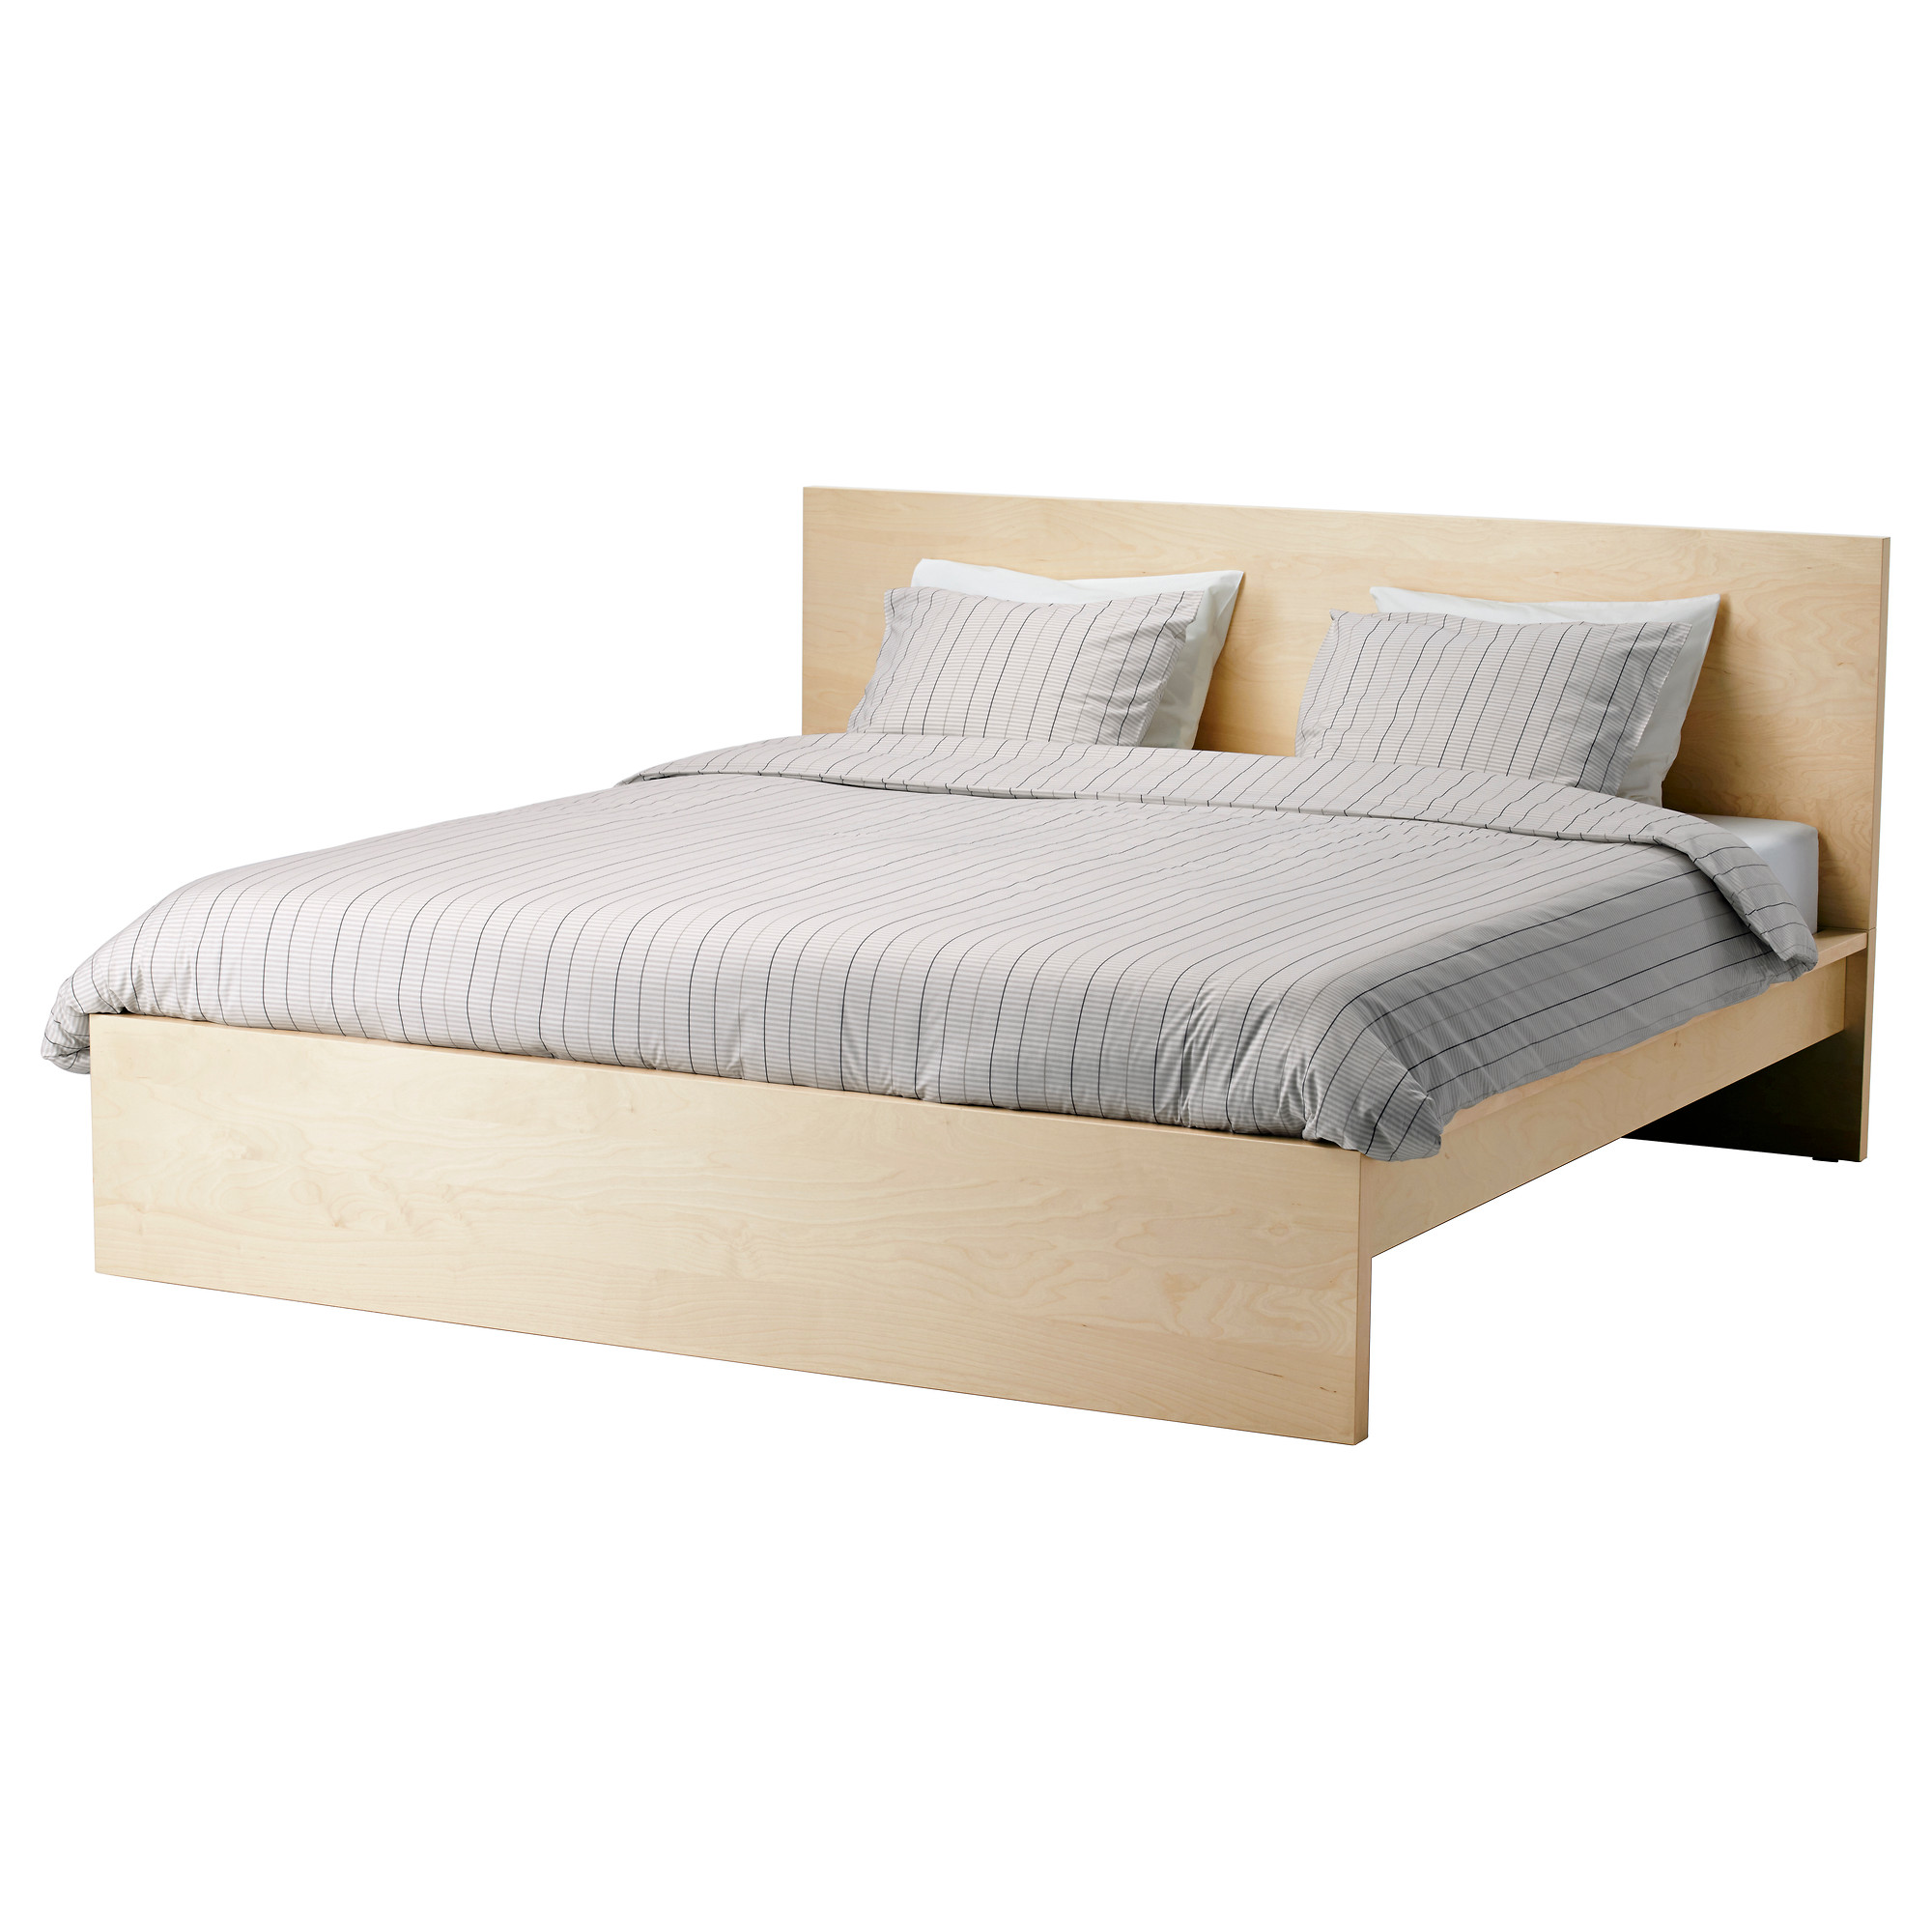 ikea king platform bed homesfeed